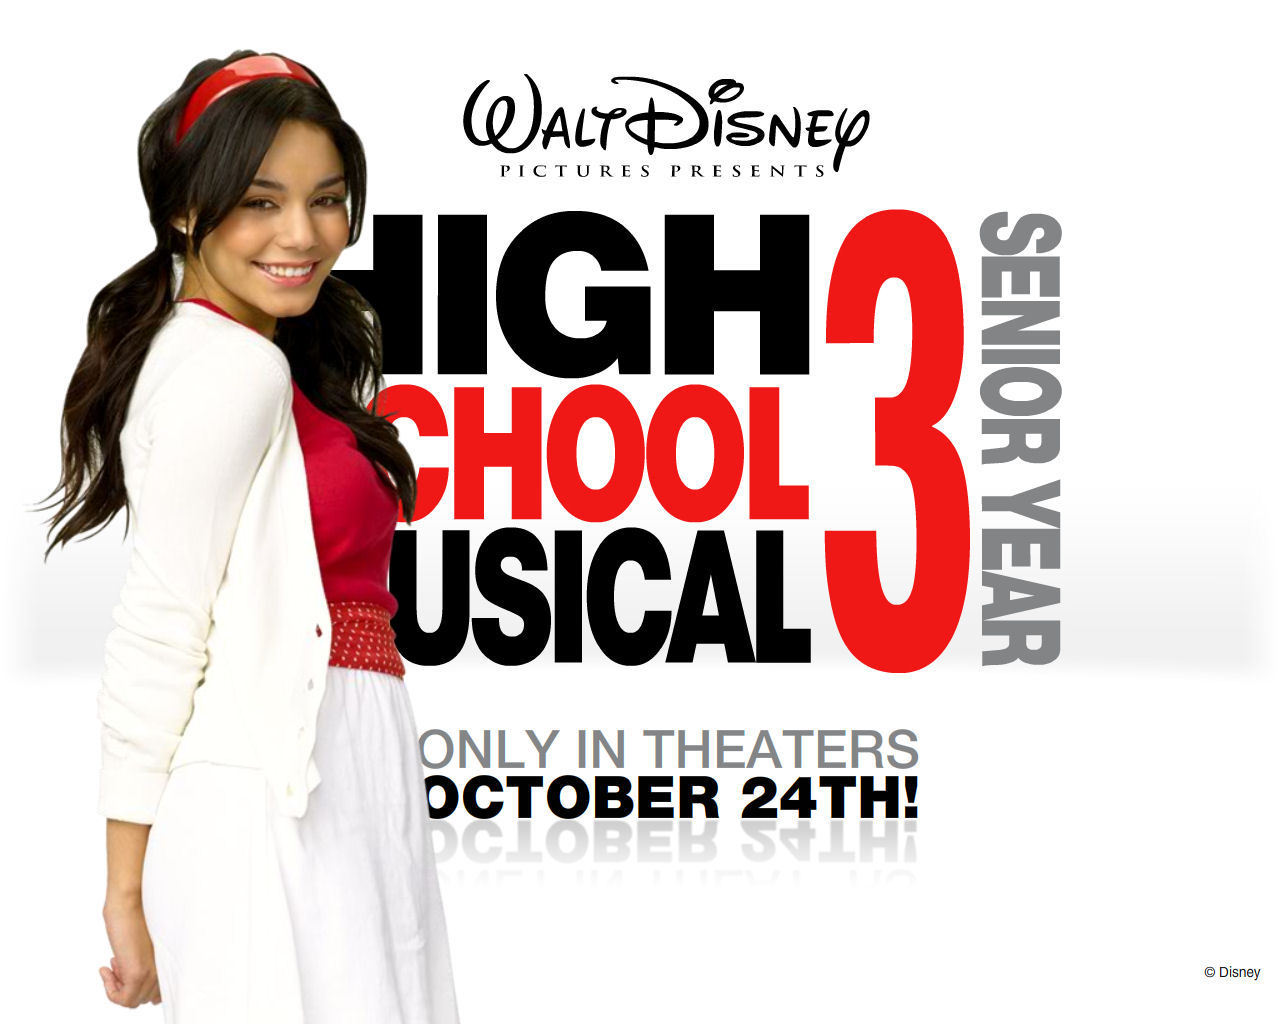 vanessa-hudgens-high-school-musical-3-1280-1024